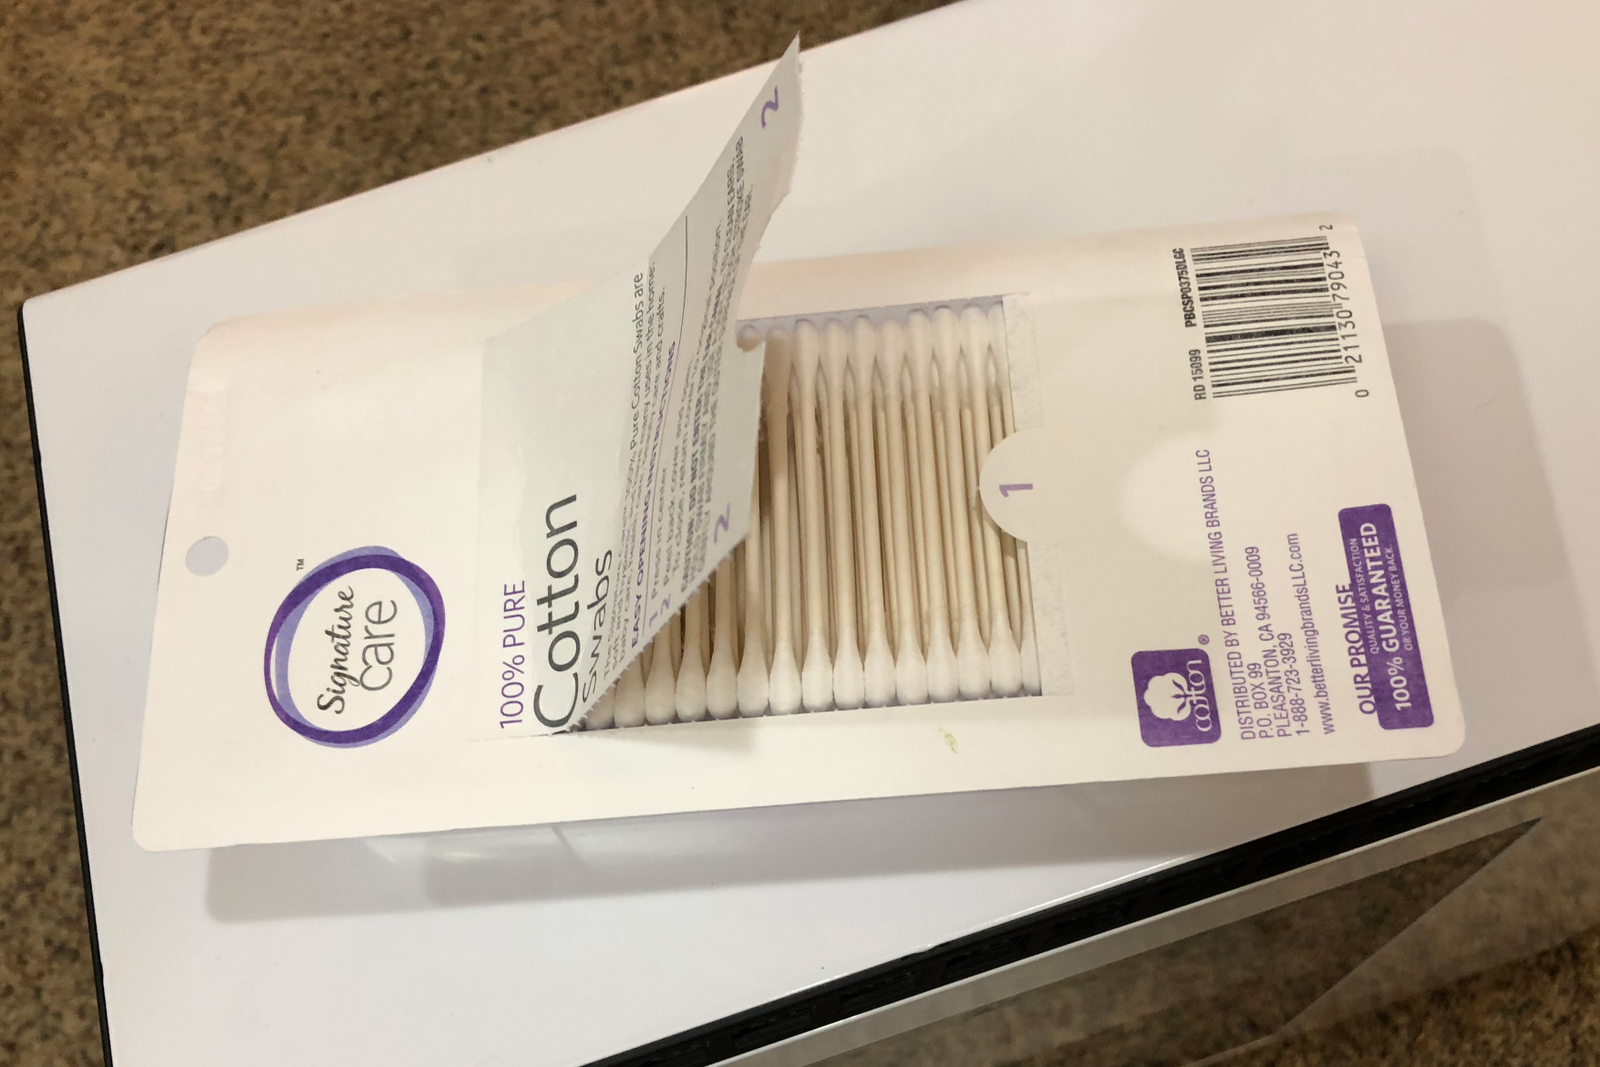 Cotton swabs: Your best friend for all the tricky-to-reach spots of your case.